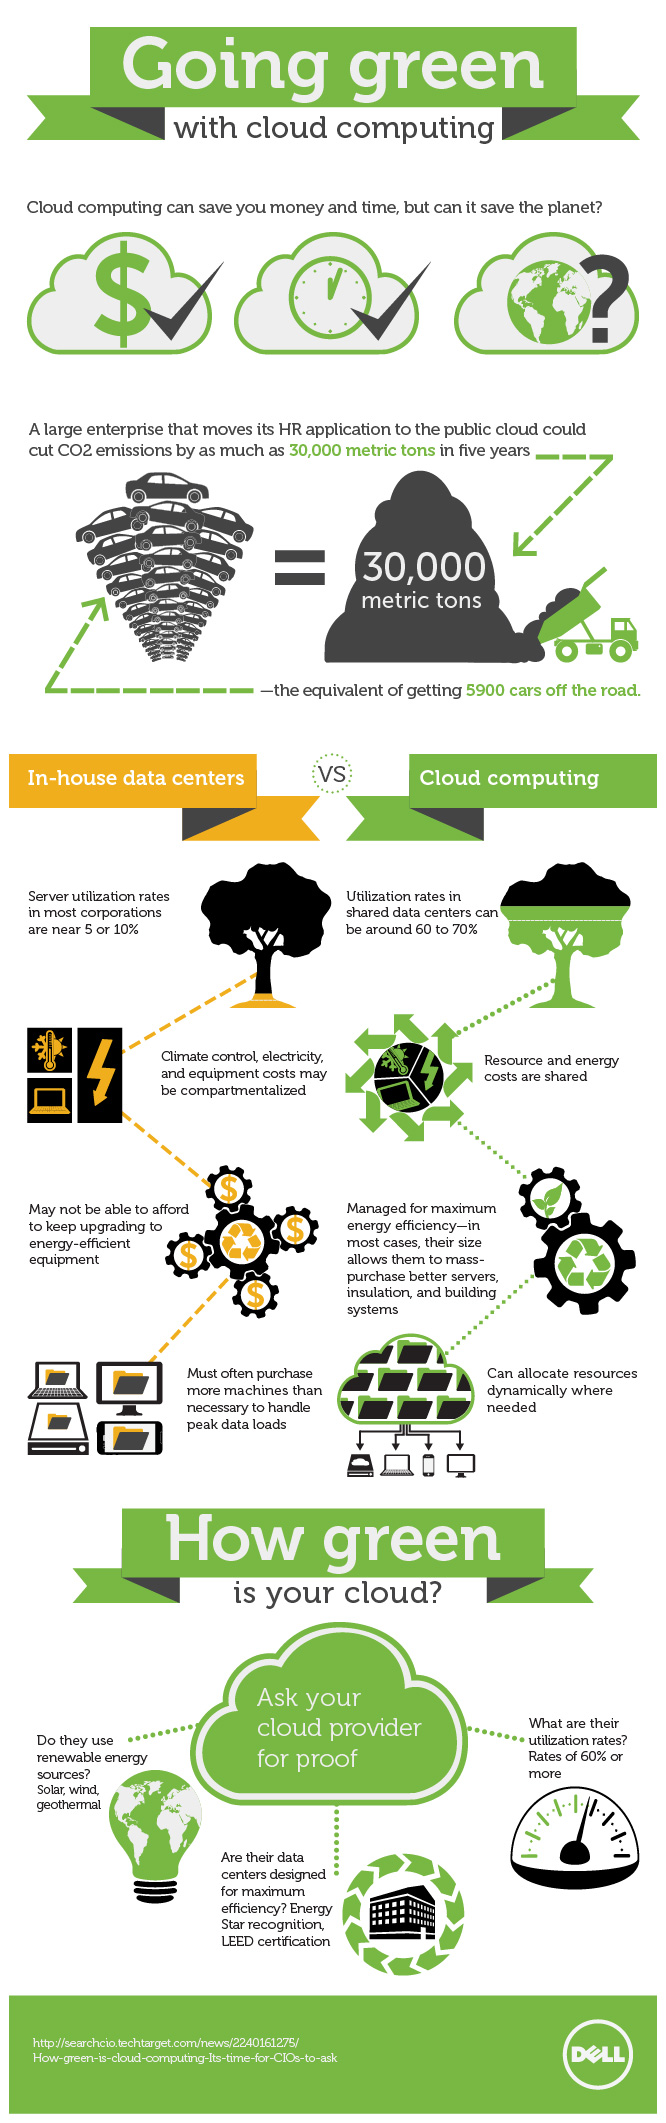 Green_Cloud_Computing-4-11